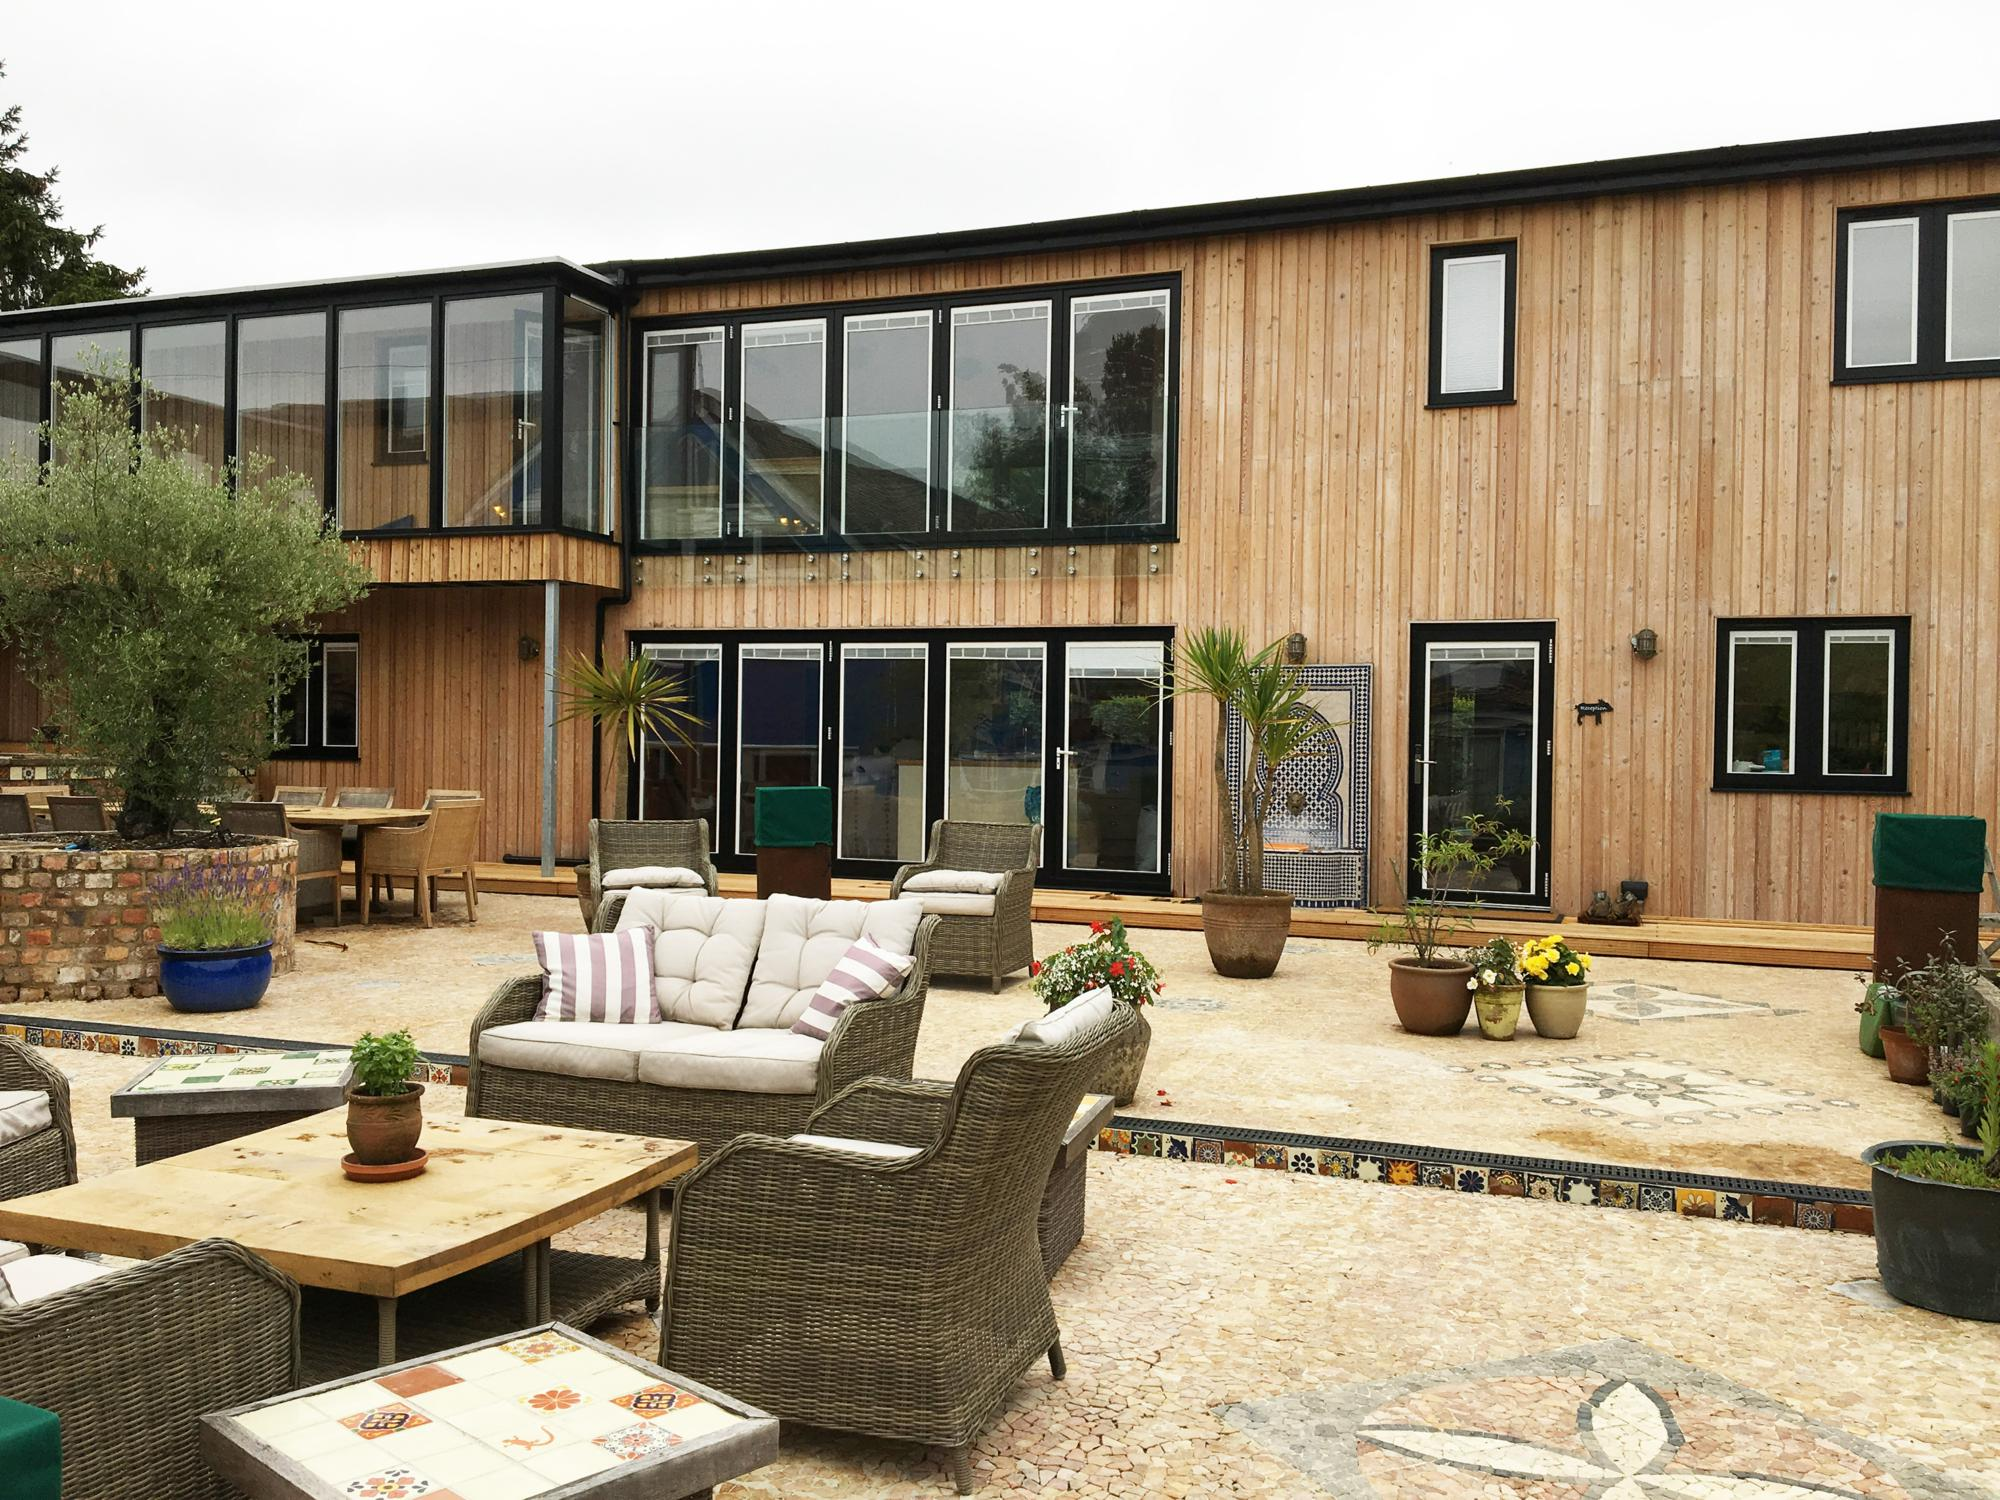 B&Bs in East Anglia holidays at Cool Places